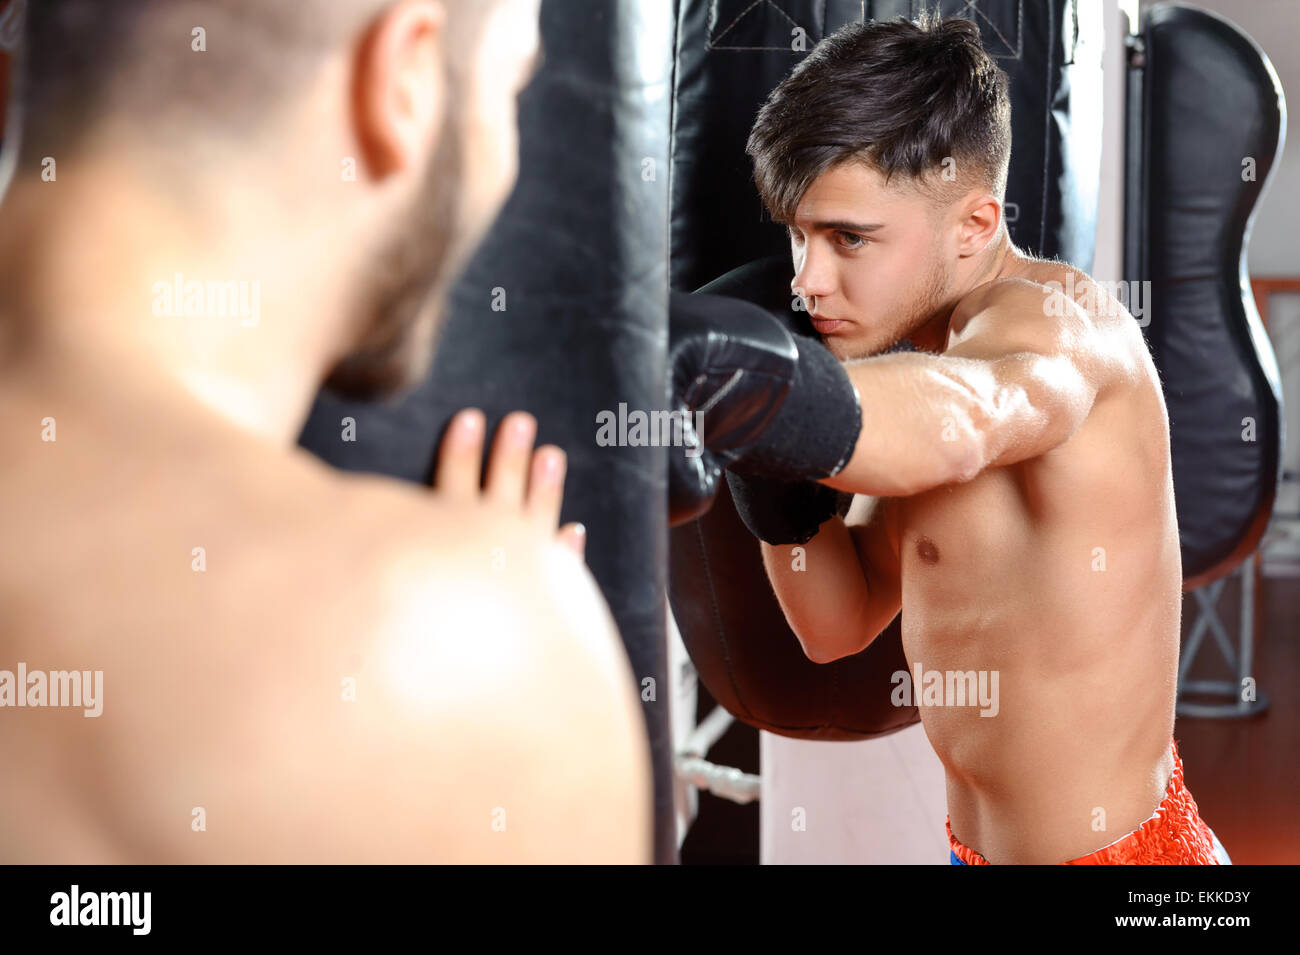 Boxing coach trains his team - Stock Image